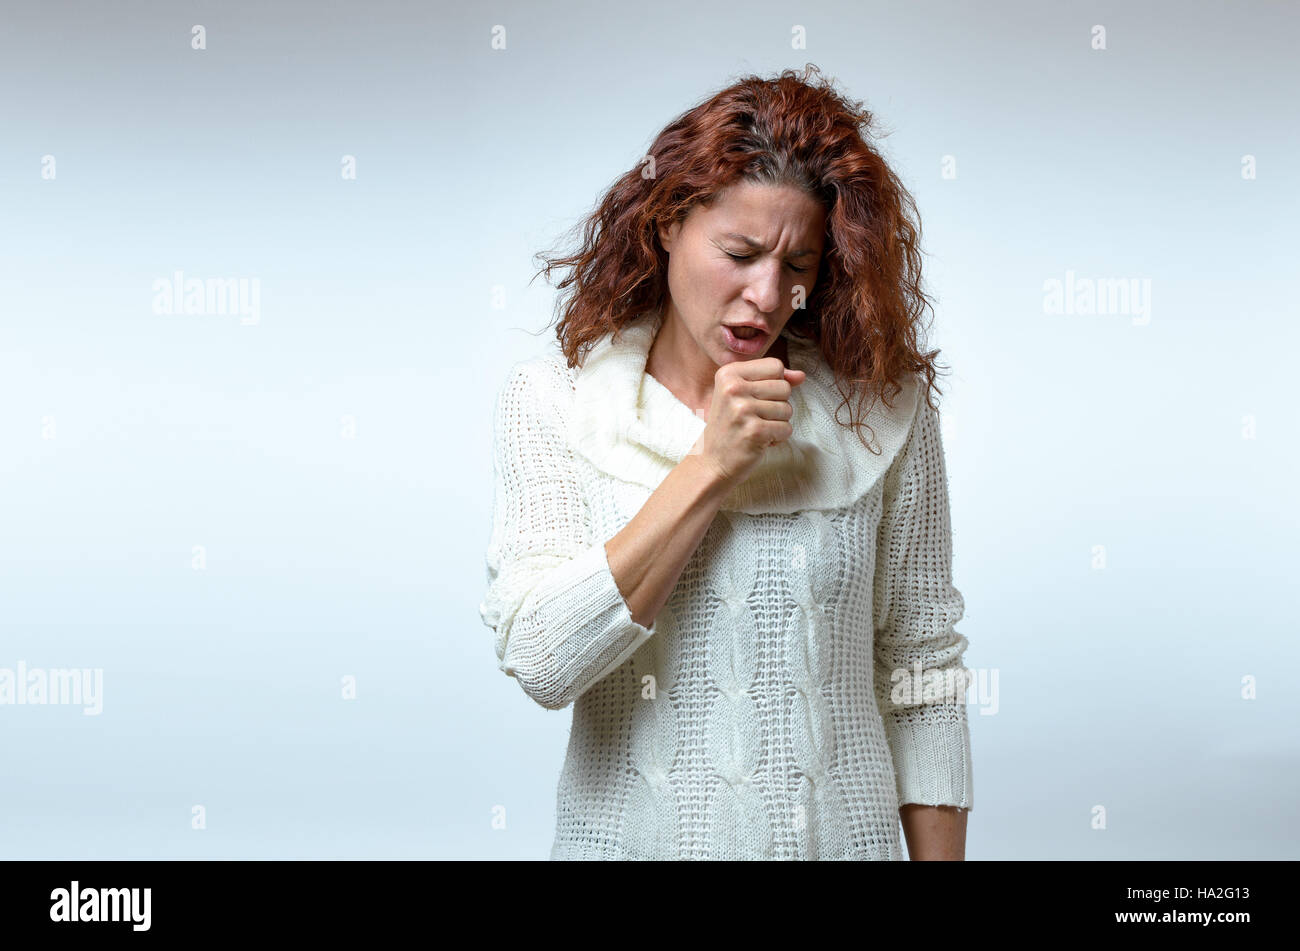 Attractive young woman in stylish winter fashion standing coughing raising her fist to her mouth in a healthcare - Stock Image